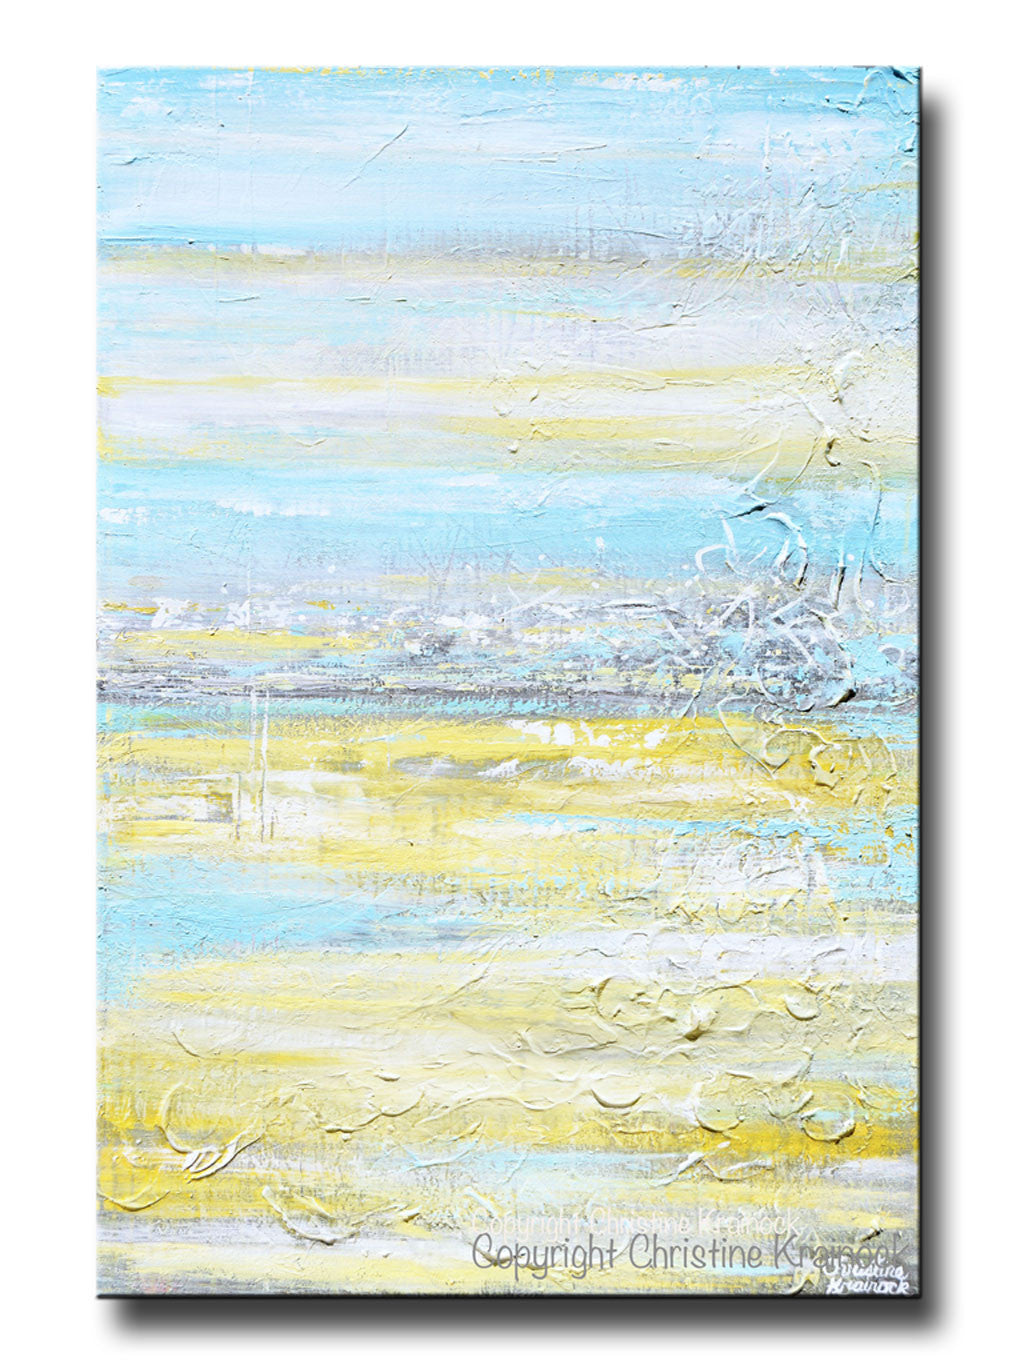 ORIGINAL Art Abstract Painting Yellow Grey Turquoise Blue Textured Coastal Wall Decor 36x24   sc 1 st  Contemporary Art by Christine & ORIGINAL Art Abstract Painting Yellow Grey Turquoise Blue Modern ...